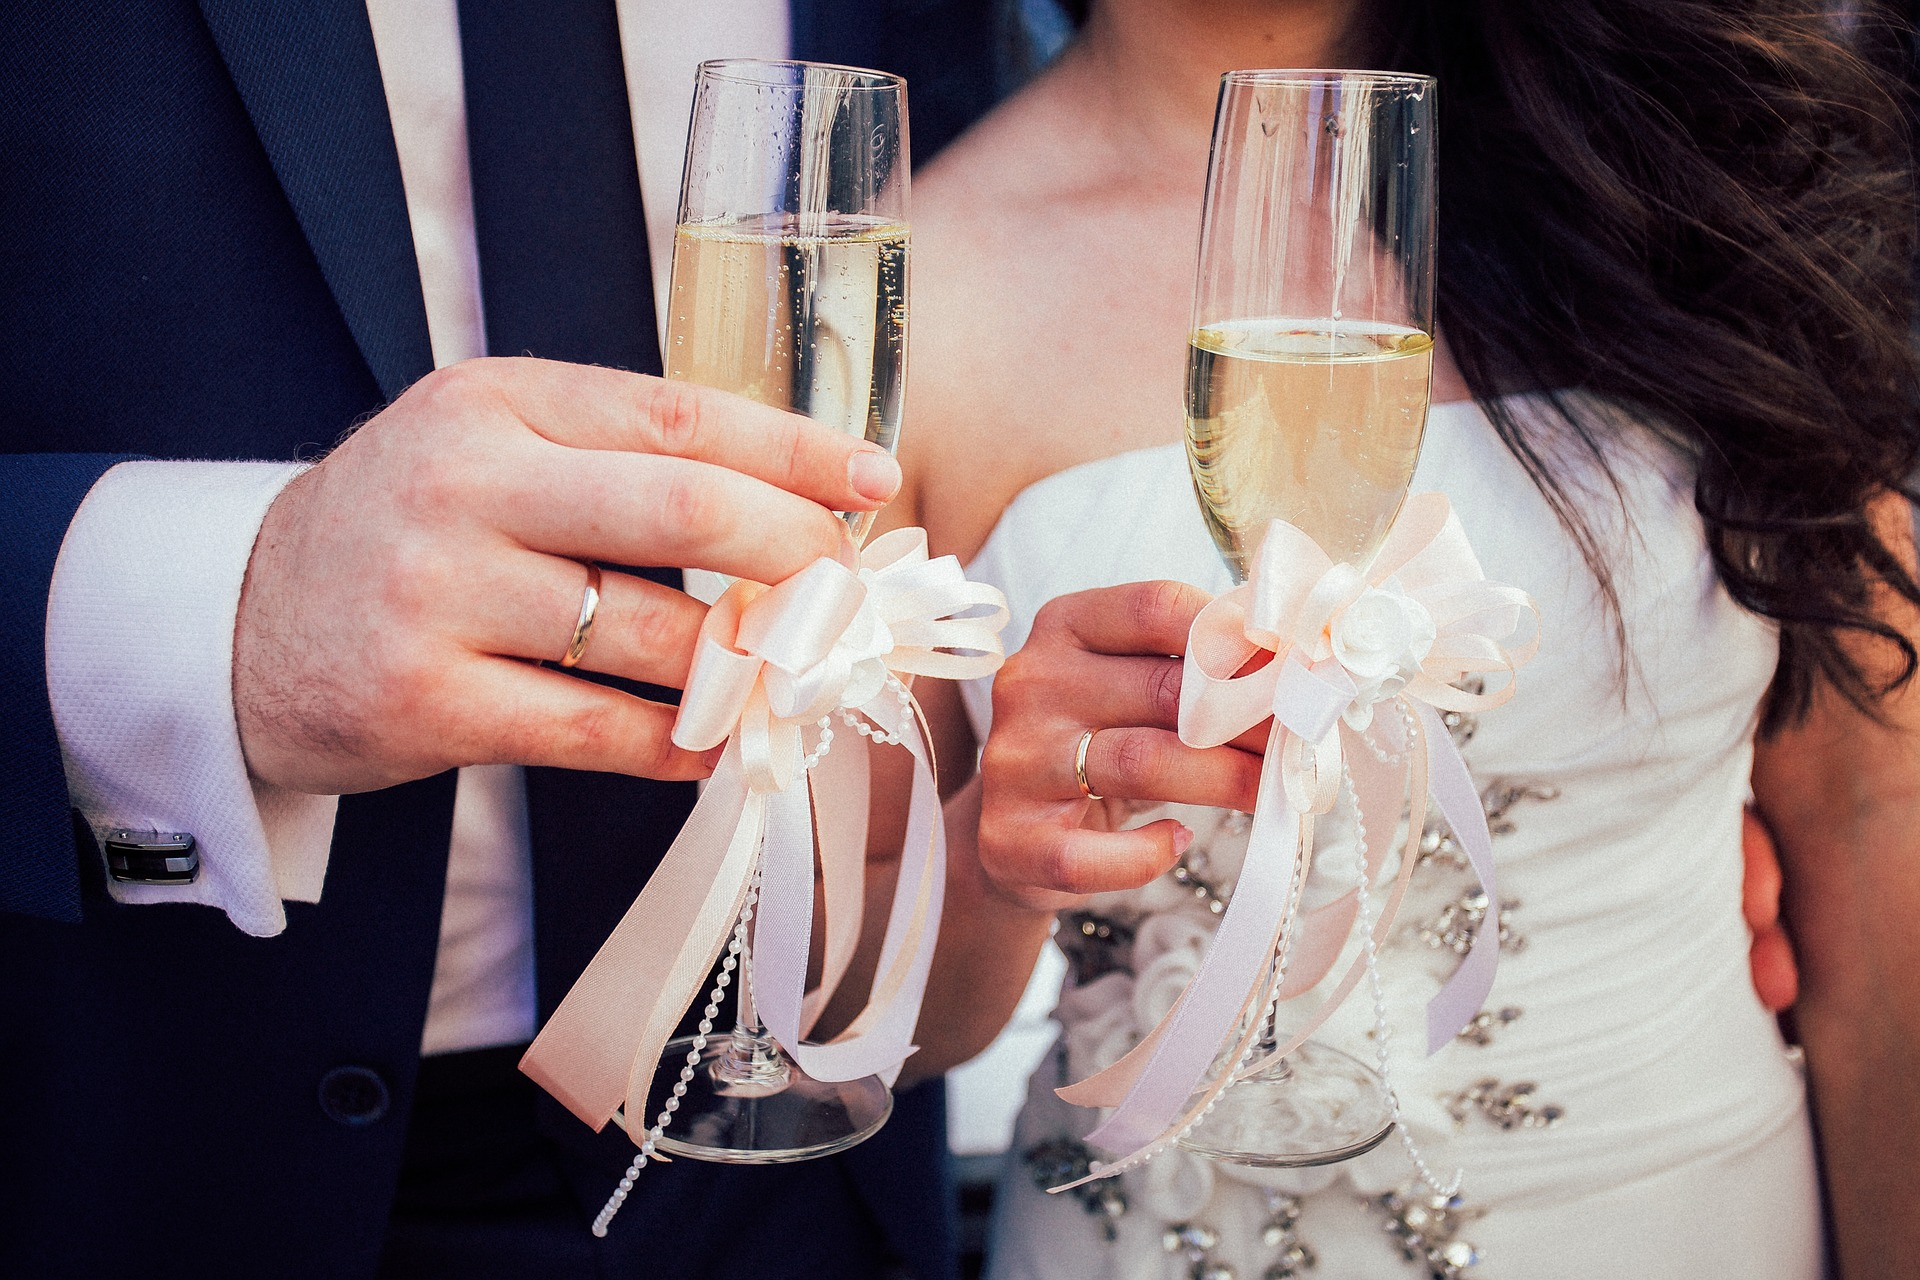 CHAMPAGNE FOR A WEDDING